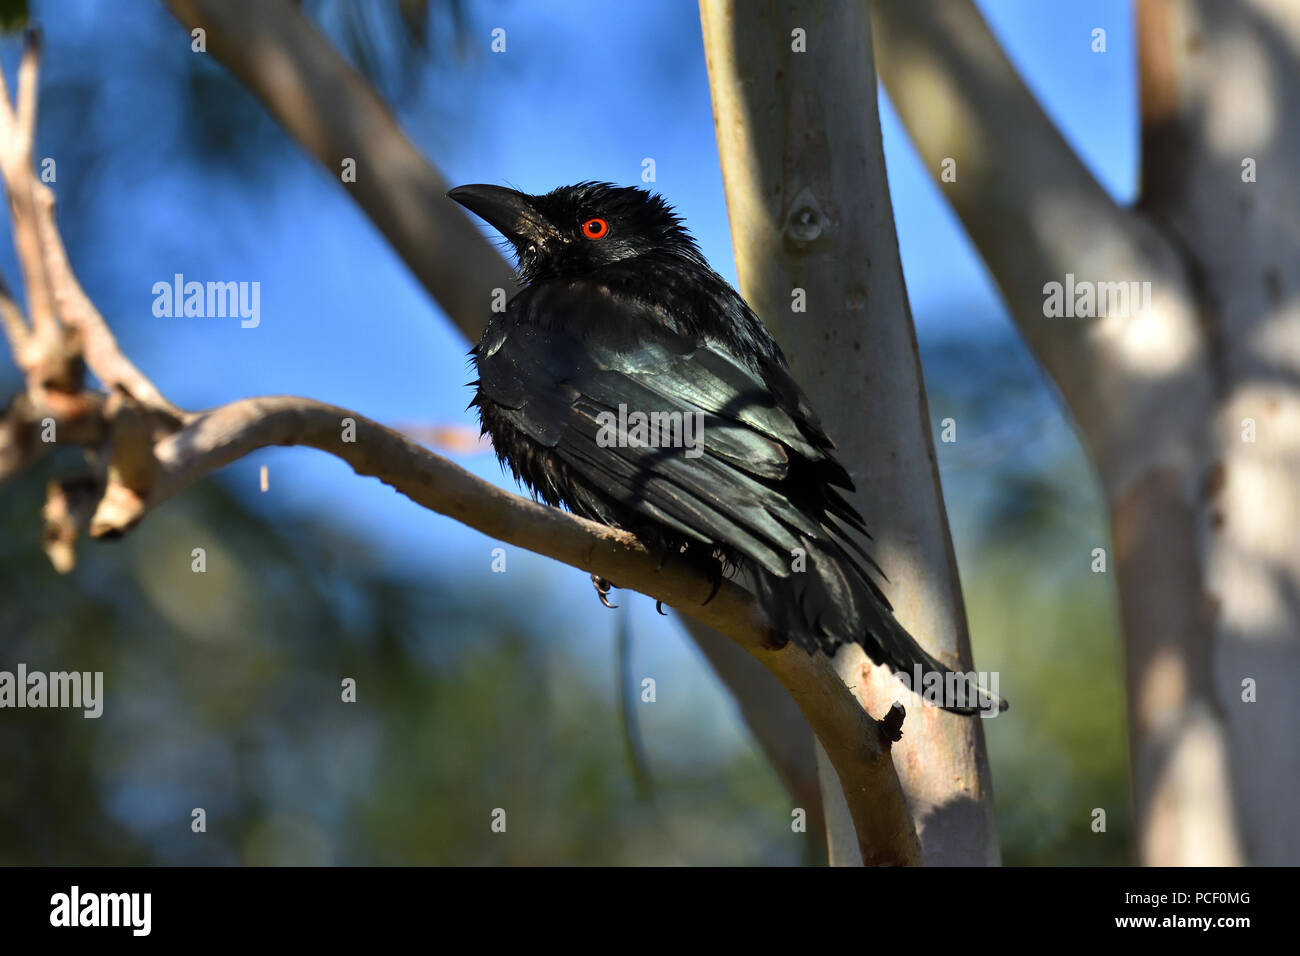 A wet Australian, Queensland Spangled Drongo ( Dicrurus bracteatus ) perched on a tree branch looking to Camera - Stock Image